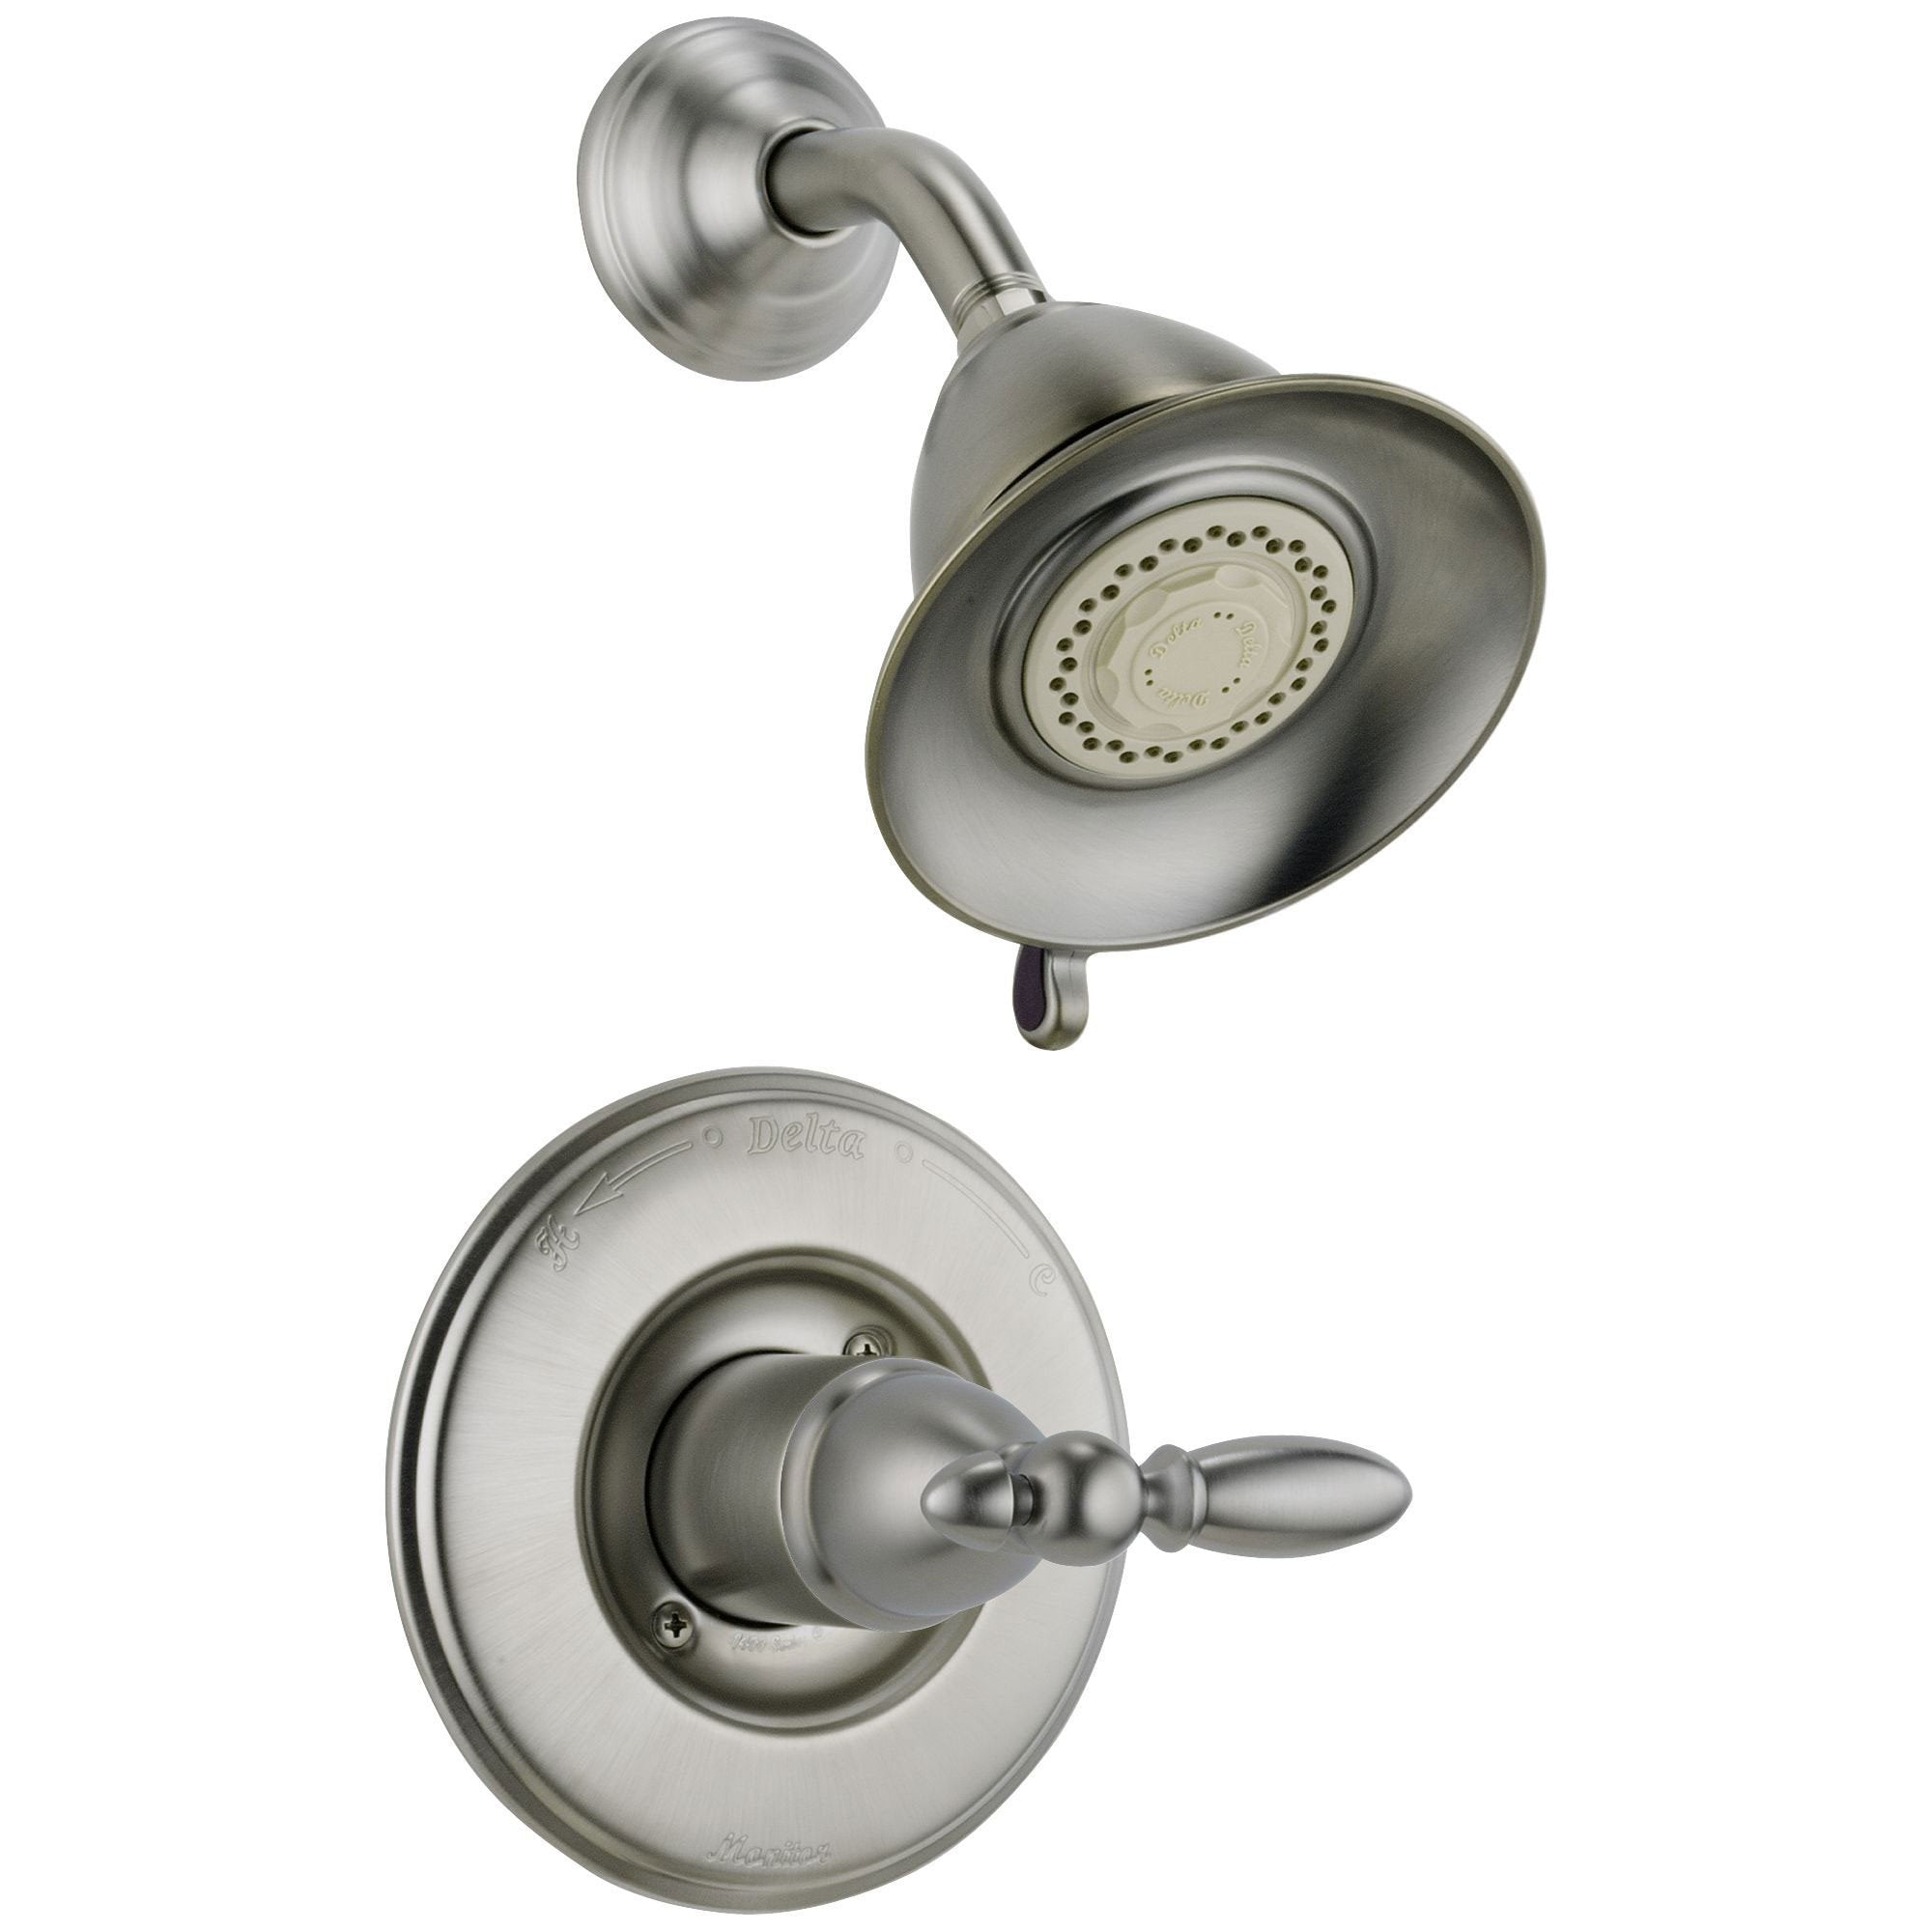 Delta Traditional Victorian Stainless Steel Finish 14 Series Shower Only Faucet INCLUDES Rough-in Valve with Stops and Single Lever Handle D1195V